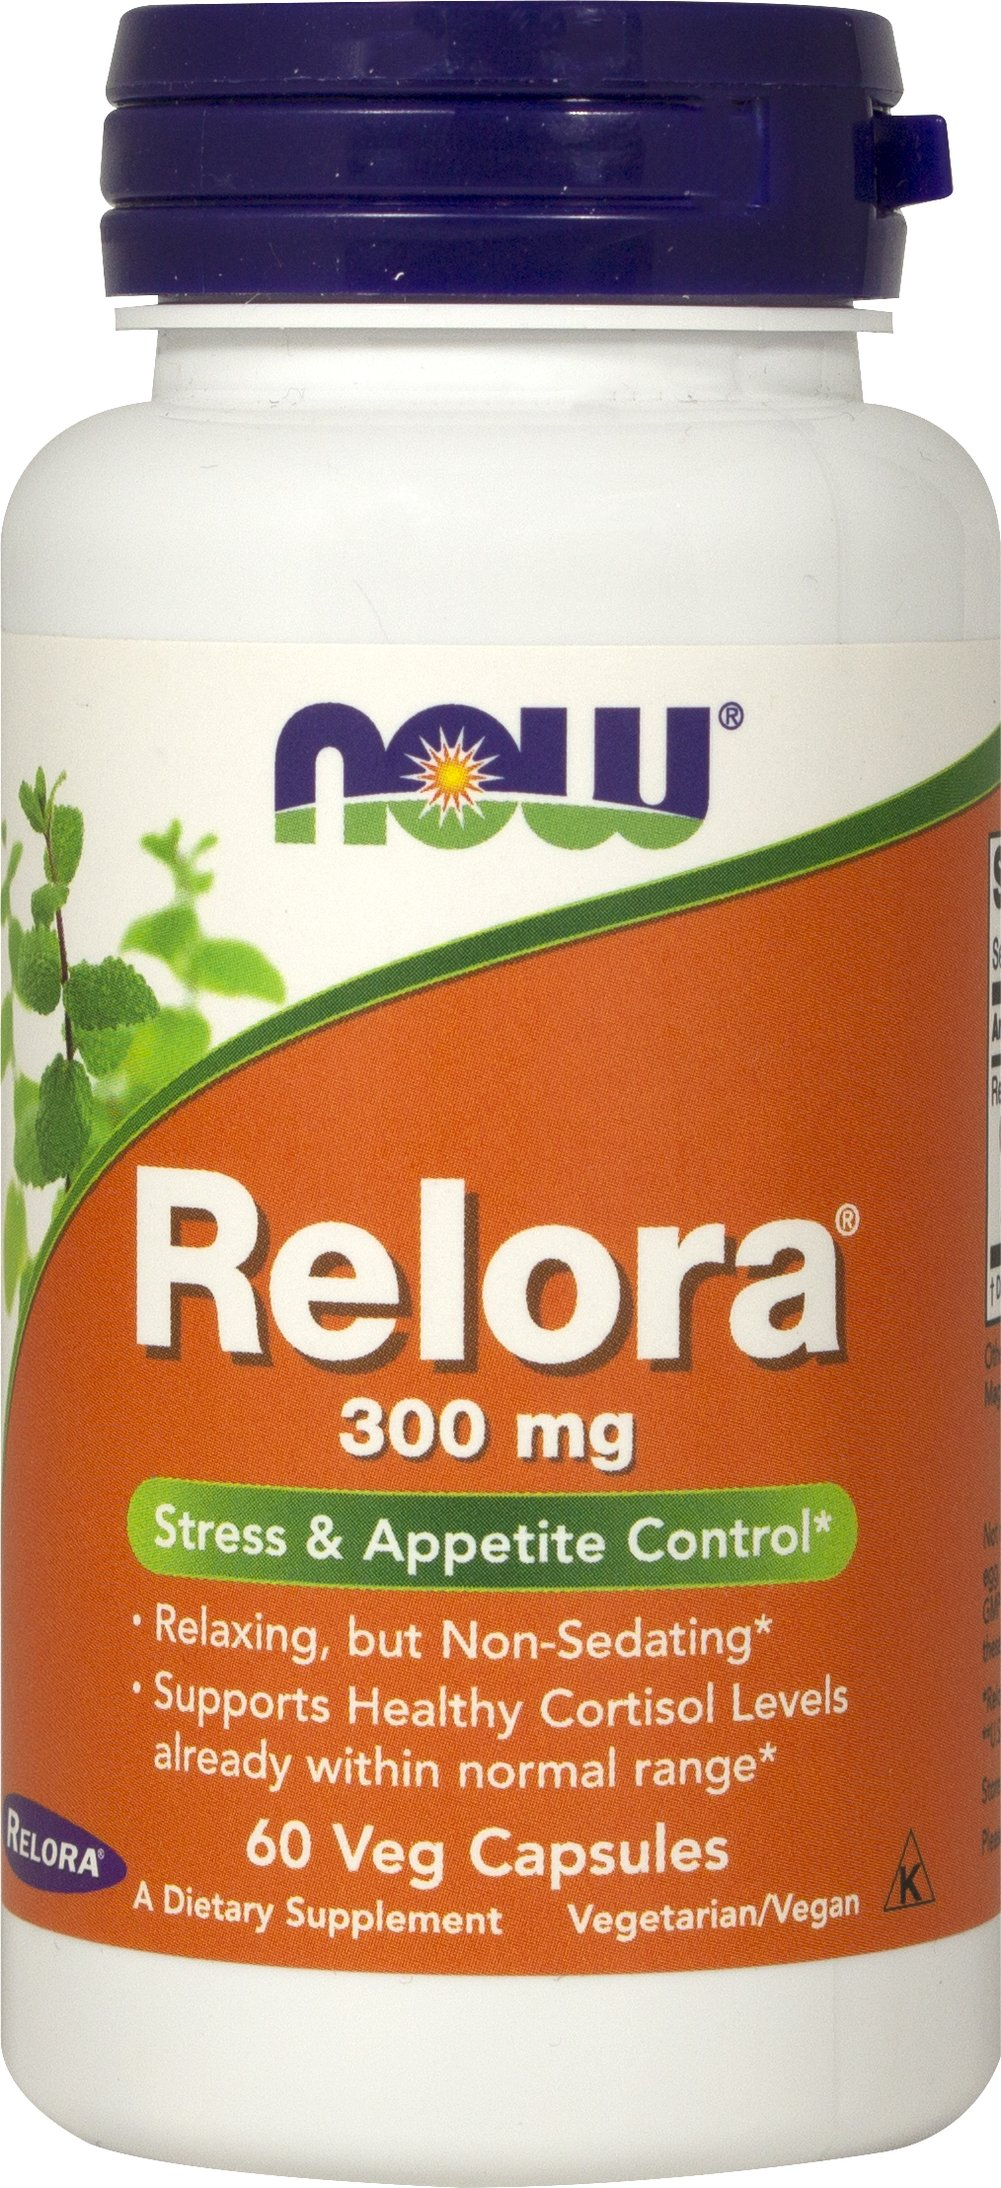 Relora <p><strong>From the Manufacturer's label:</strong></p><p>Vegetarian Formula</p><p></p>NOW®Relora® is an all-natural proprietary blend of plant extracts from Magnoli officinalis and Phellodendron amurense that is not habit-forming.**<p></p><p>Manufactured by NOW FOODS</p> 60 Capsules 300 mg $10.99